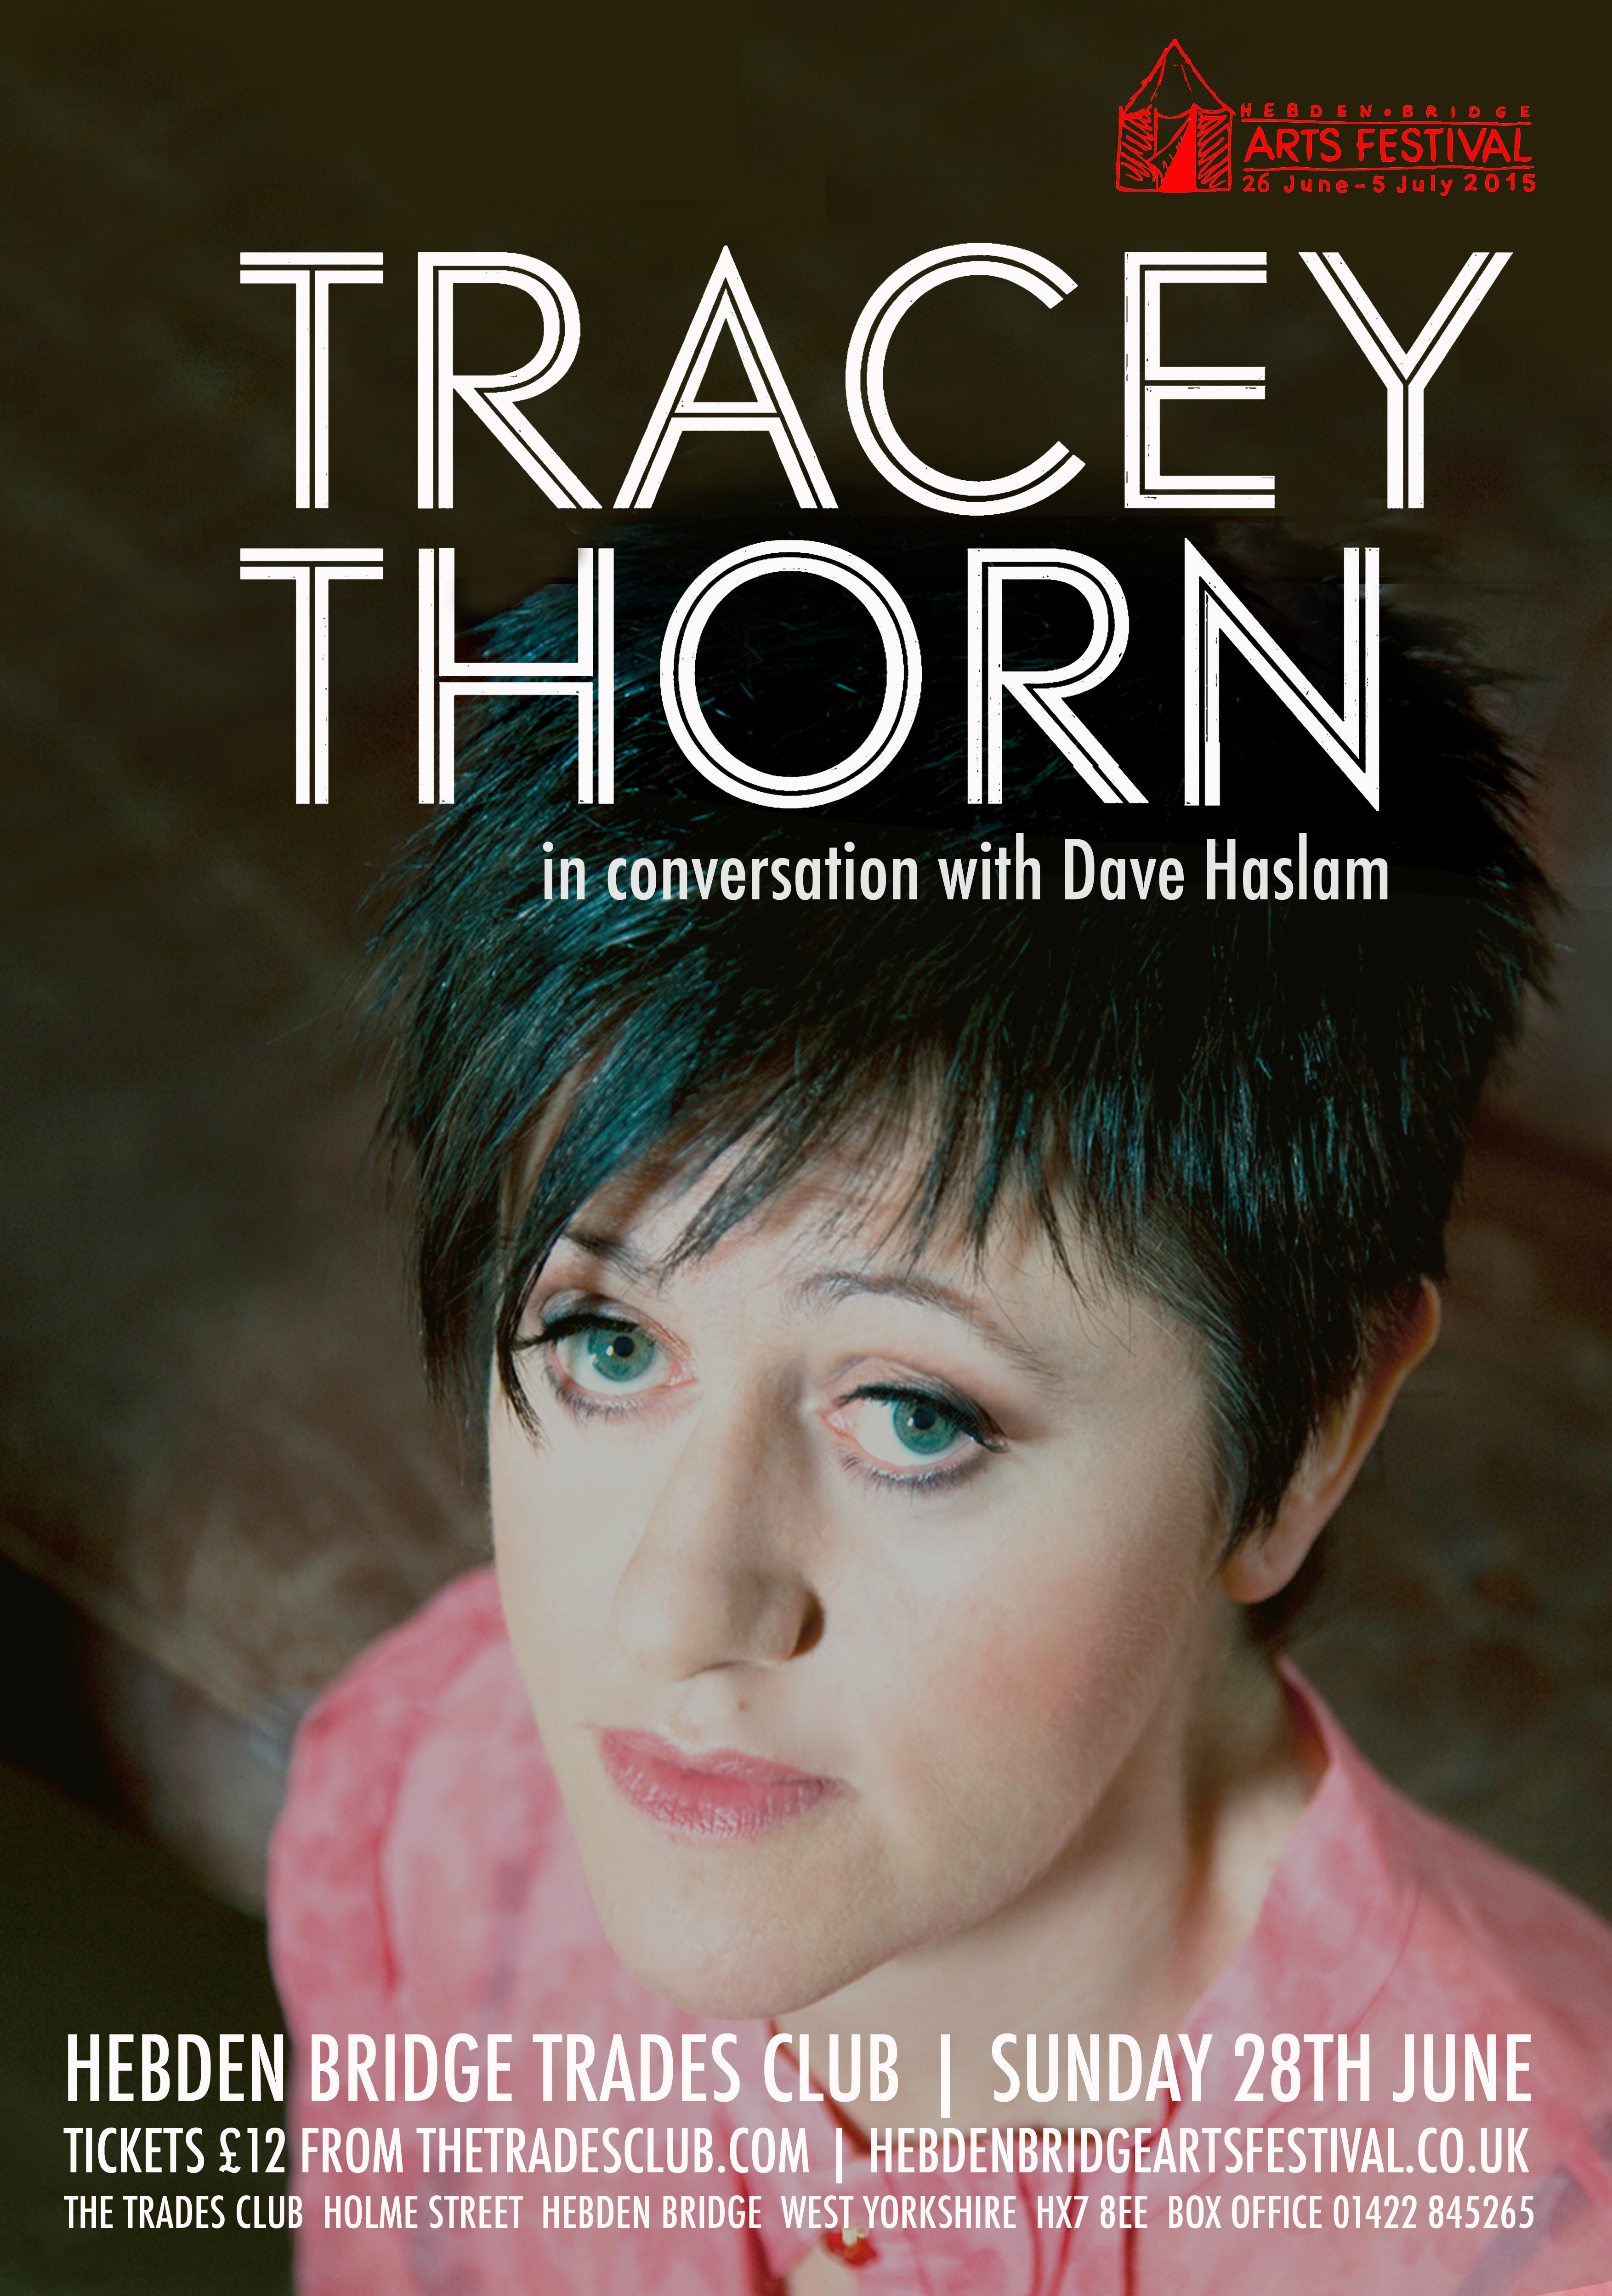 Tracey Thorn in Conversation with Dave Haslam